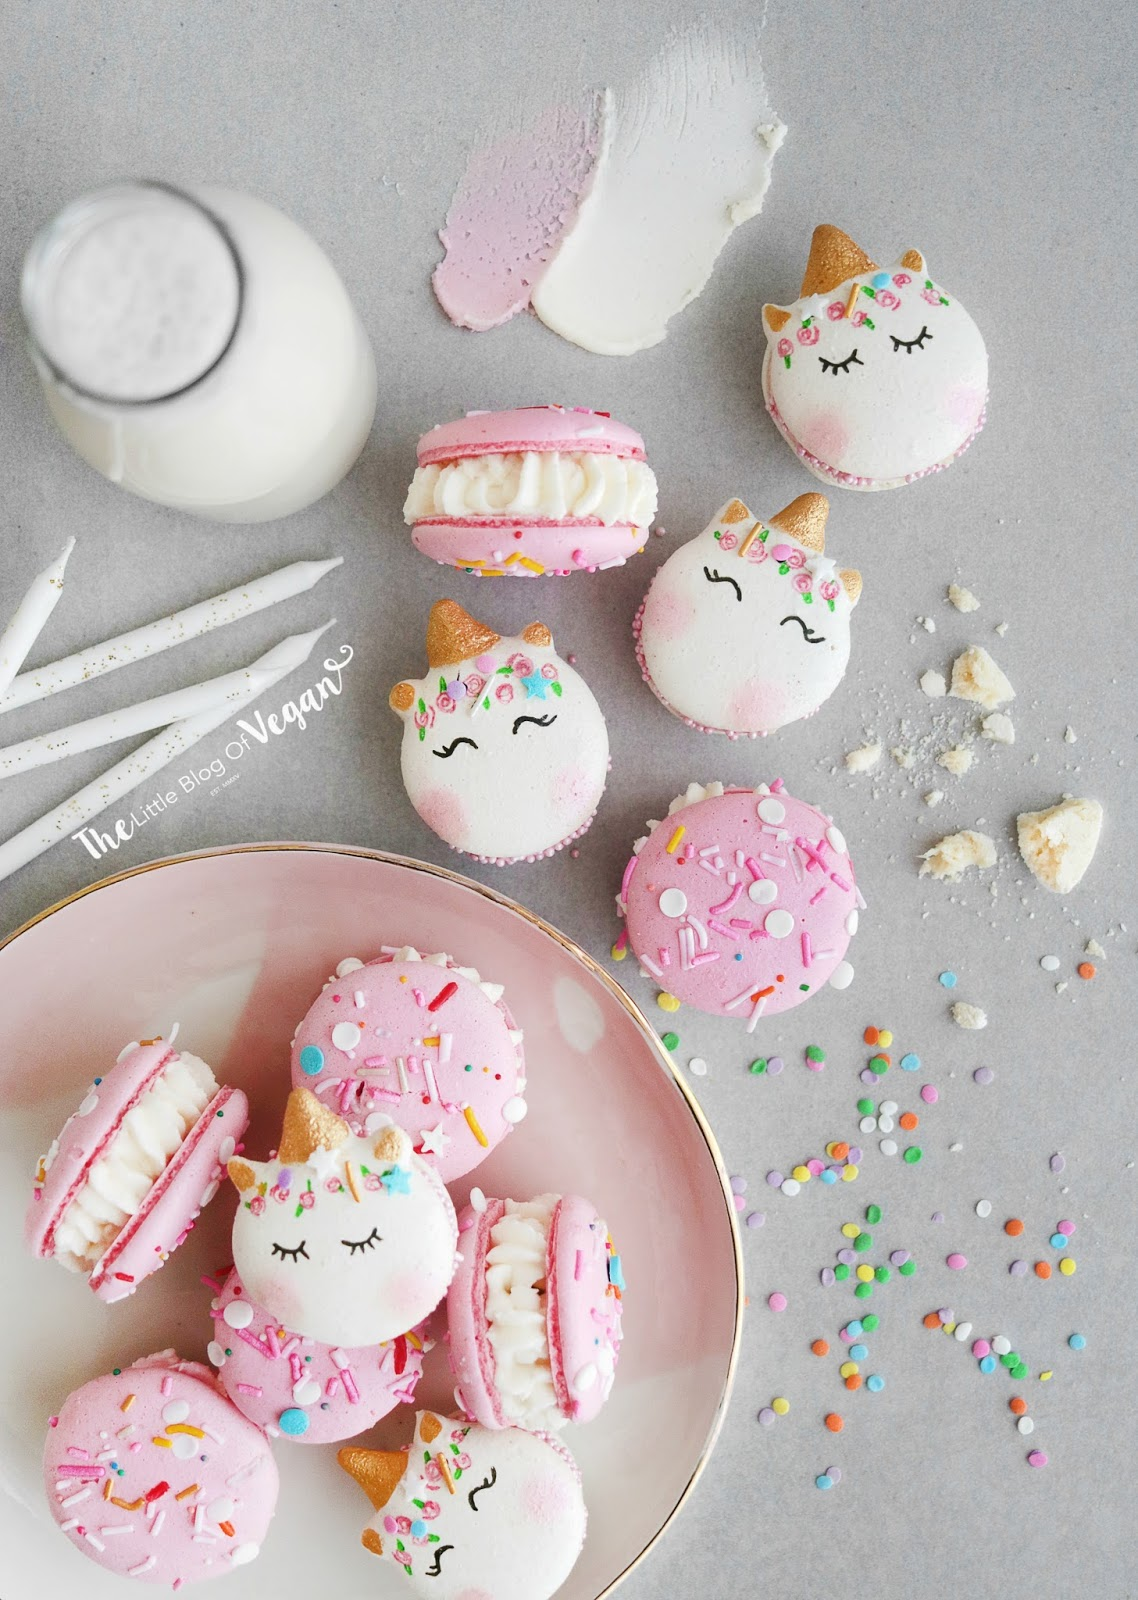 I Have Also Made Some Very Easy Yet Effective Unicorn Macarons Too They Look Stunning Along With The Pink Birthday Cake